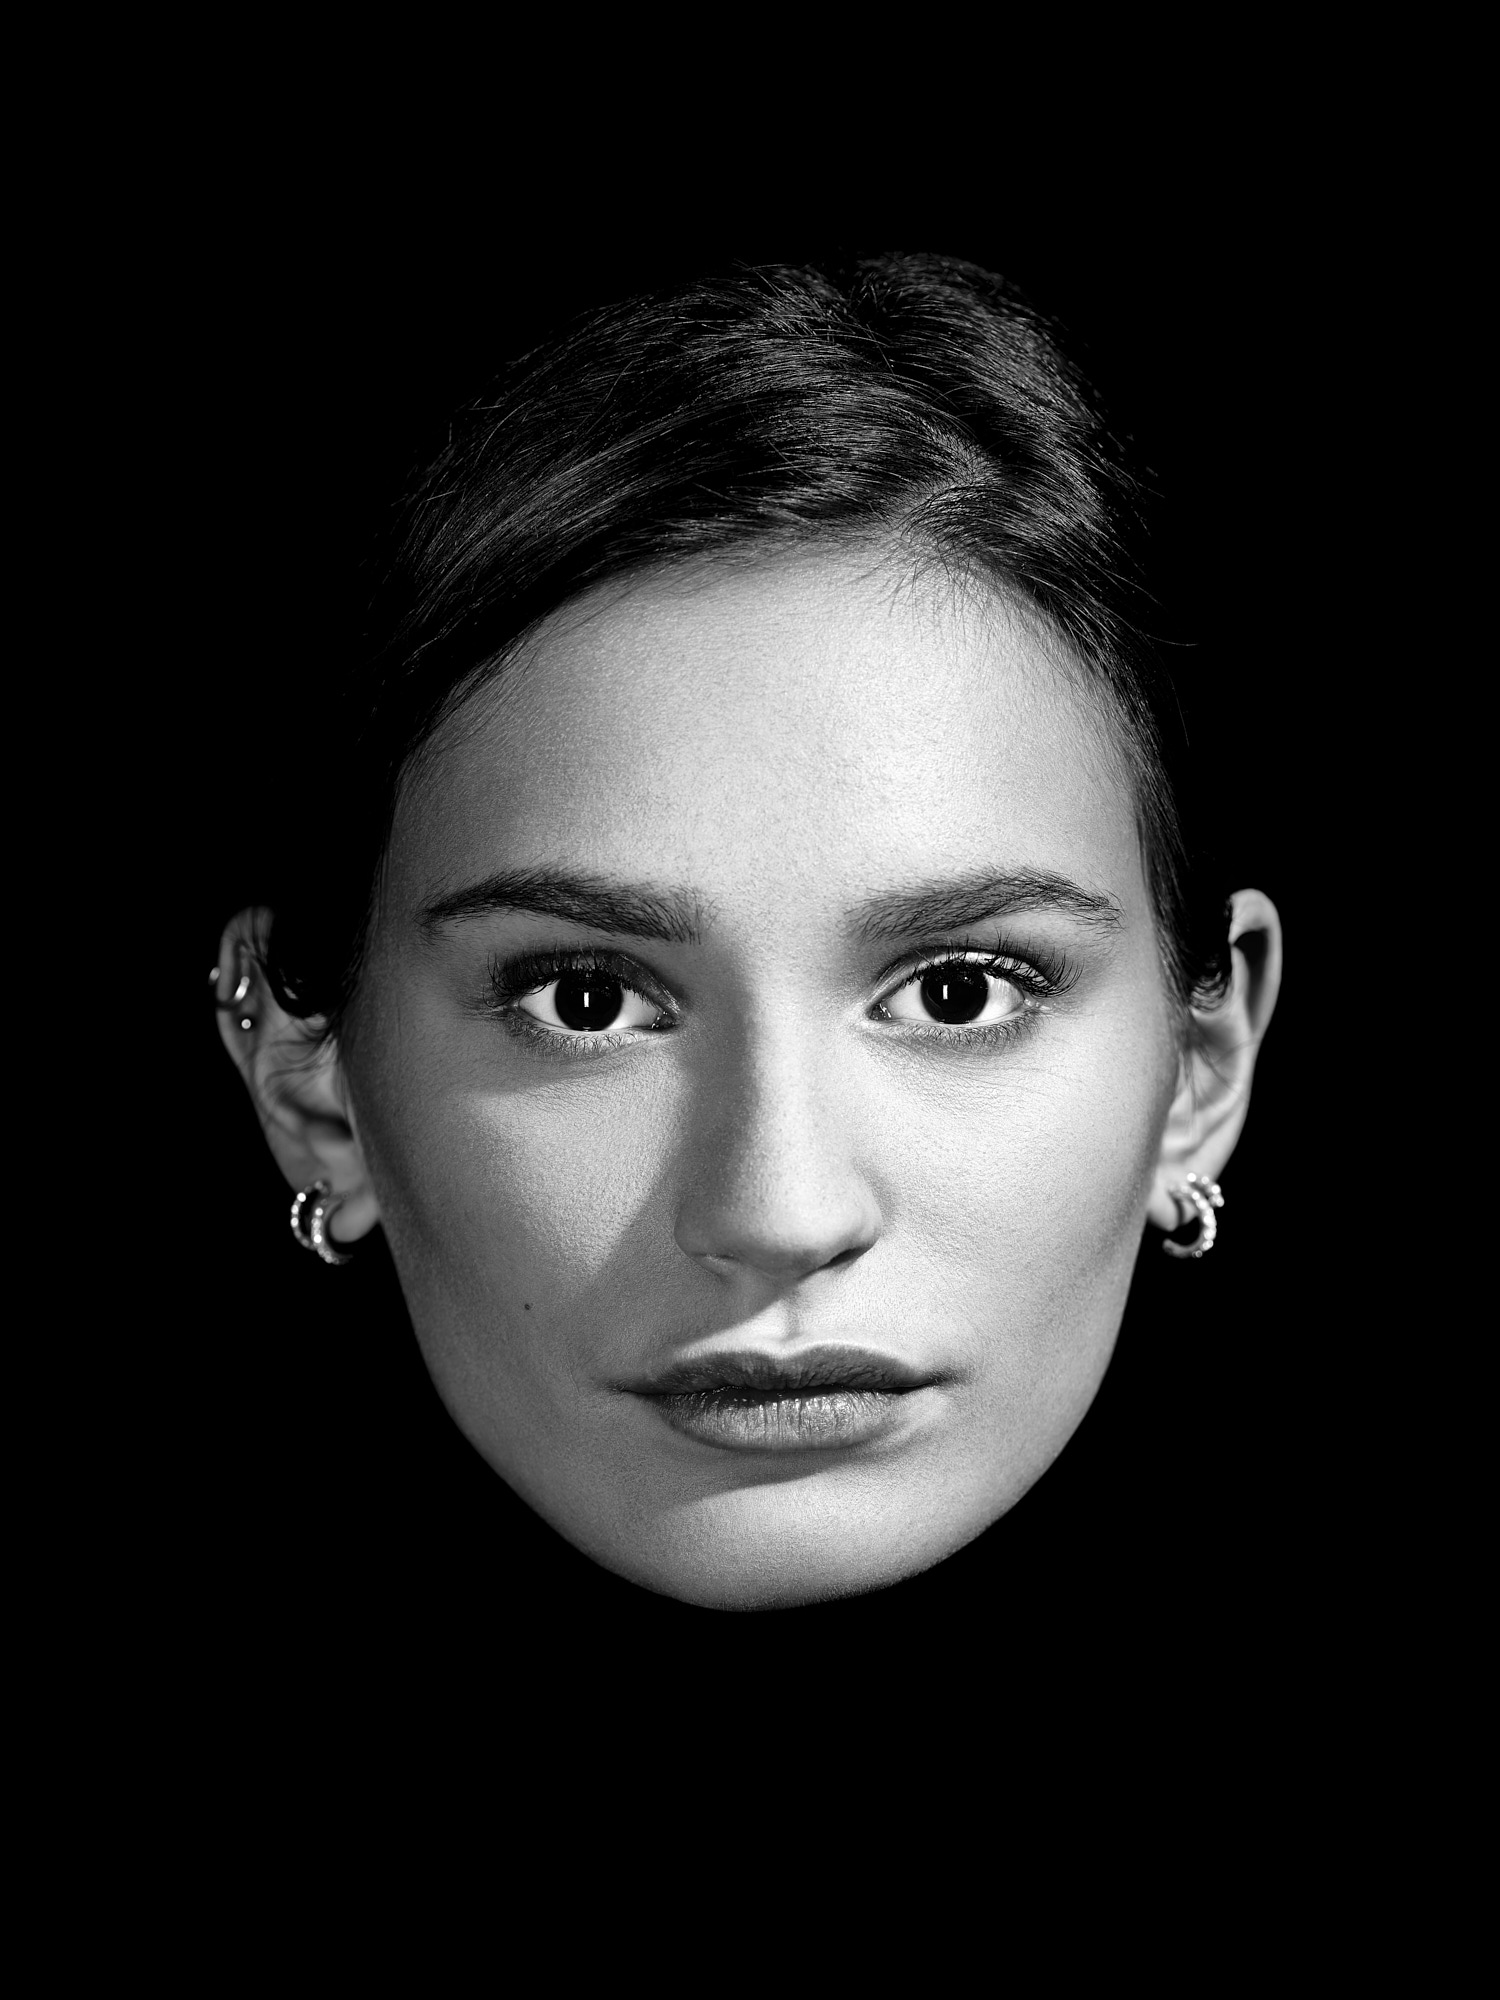 Close-up black and white portrait in studio for a McDonald's internal campaign